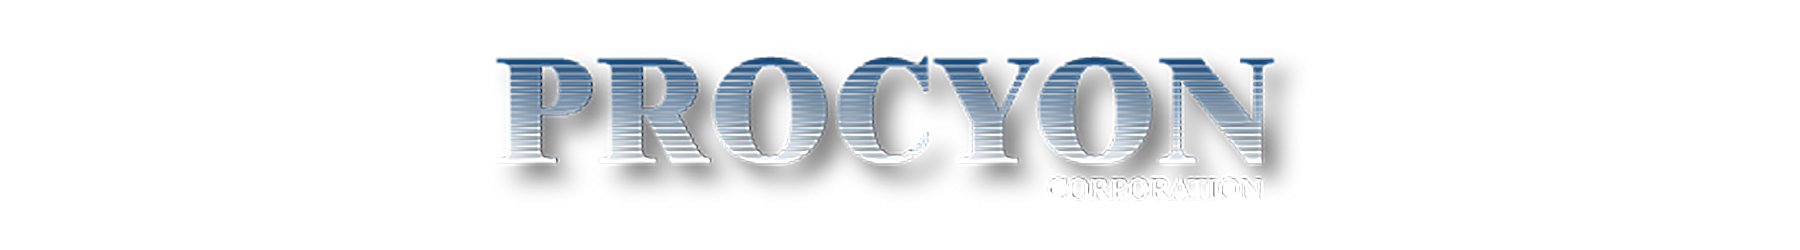 Procyon Corporation Logo